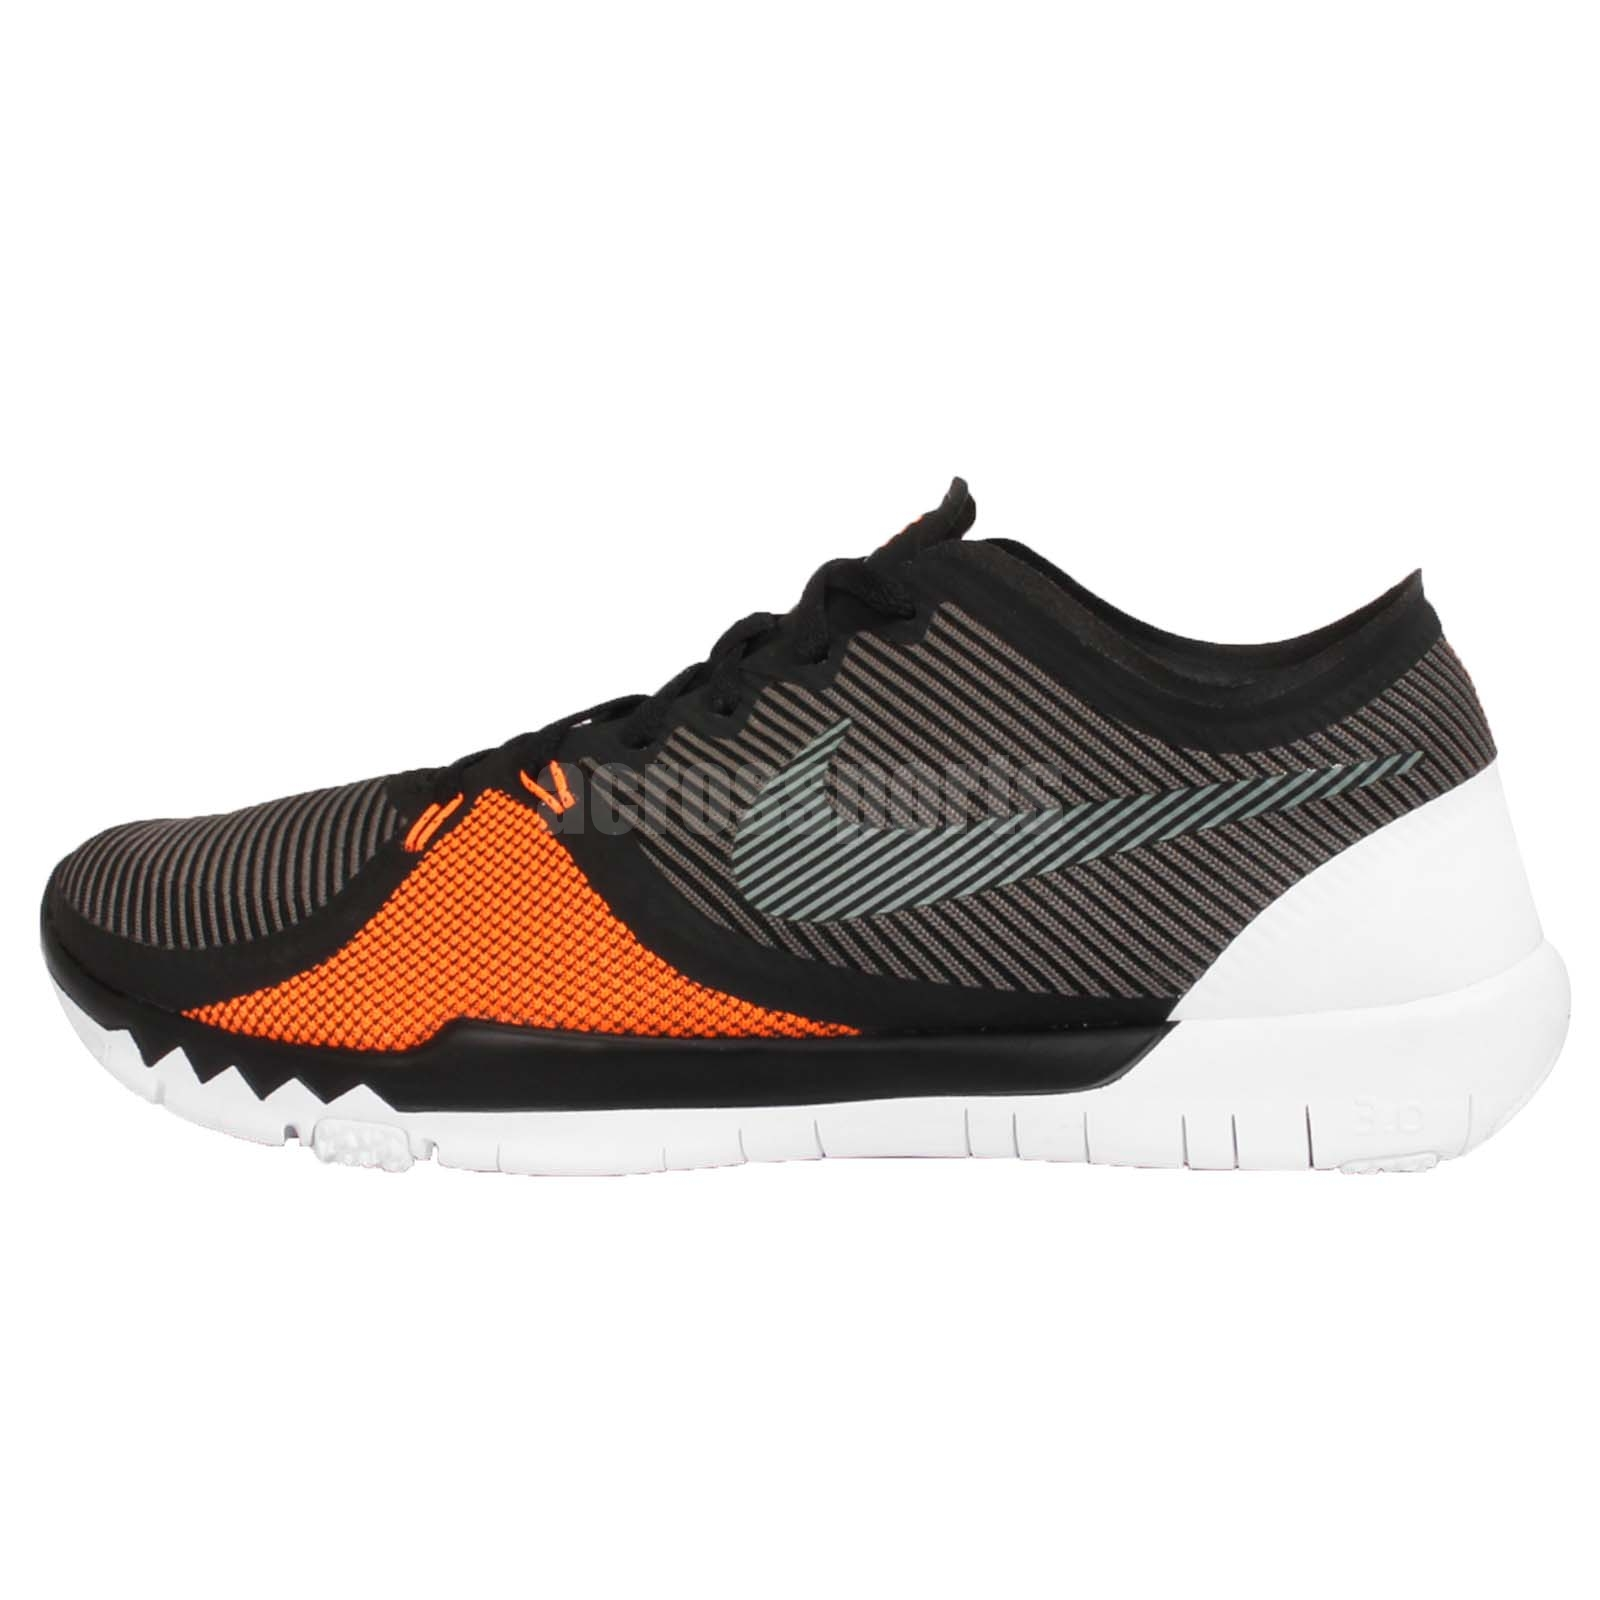 Mens Nike Free Trainer   V Cross Training Shoes Black